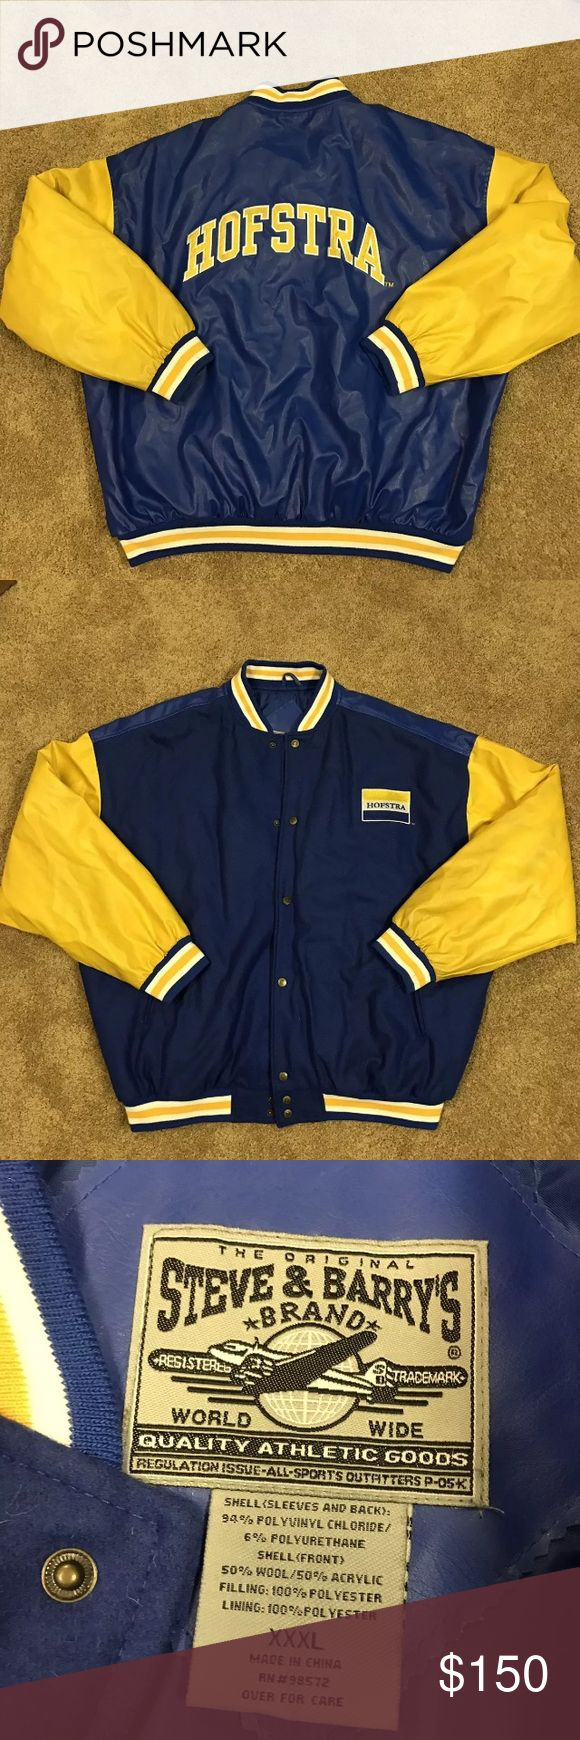 Hofstra University Varsity Wool XXXL Steve & Barry Hofstra University Wool Steve & Barry's variety jacket. Minor wear, great jacket! Steve & Barry's Jackets & Coats Bomber & Varsity